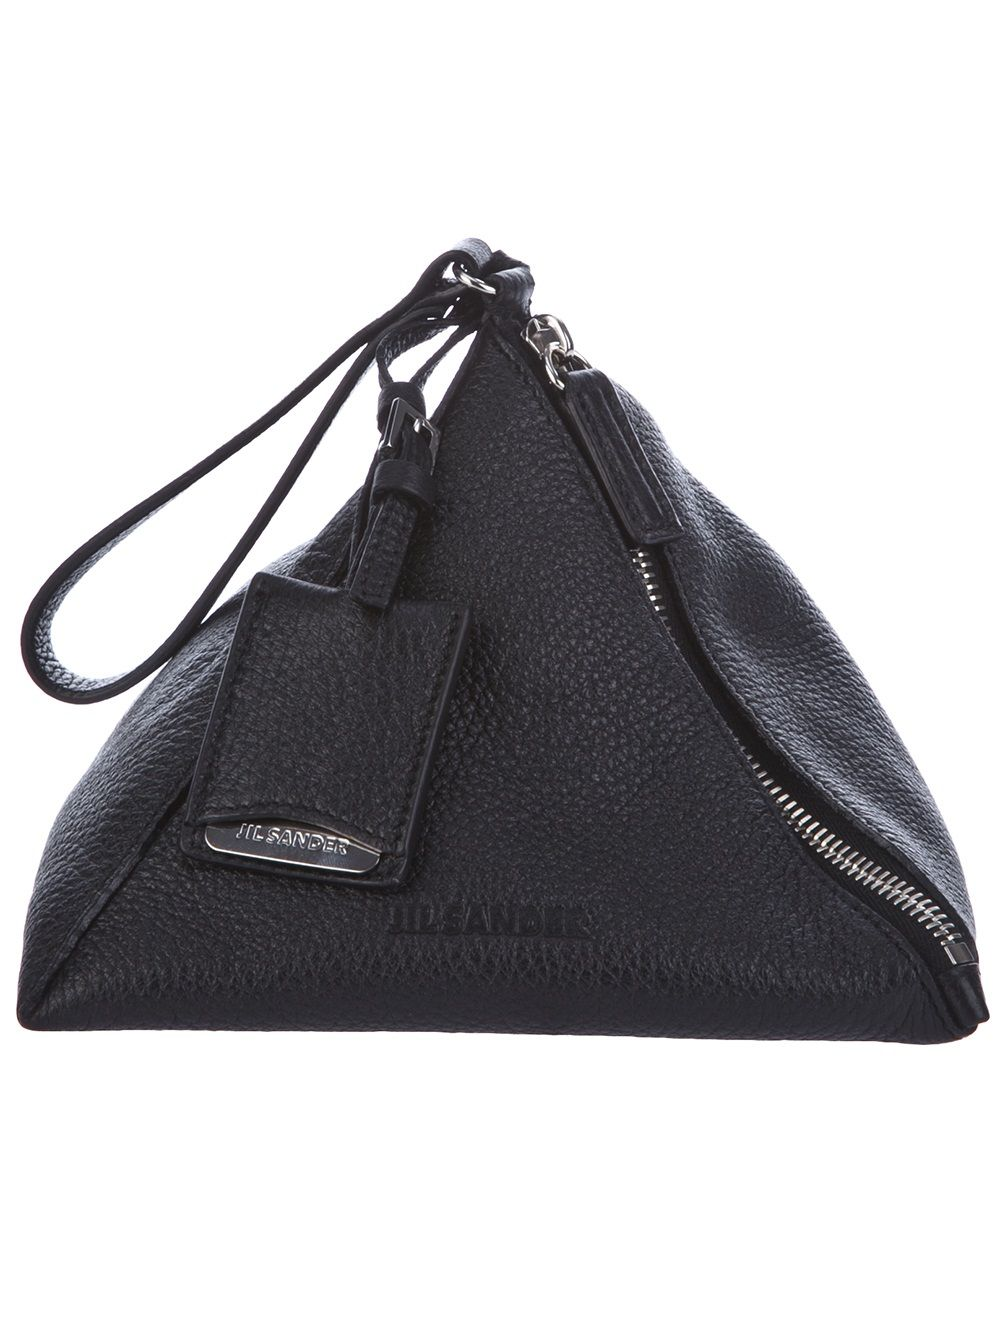 JIL SANDER, LEATHER PYRAMID CLUTCH: weirdly, i daydream of filling this with hershey's kisses.